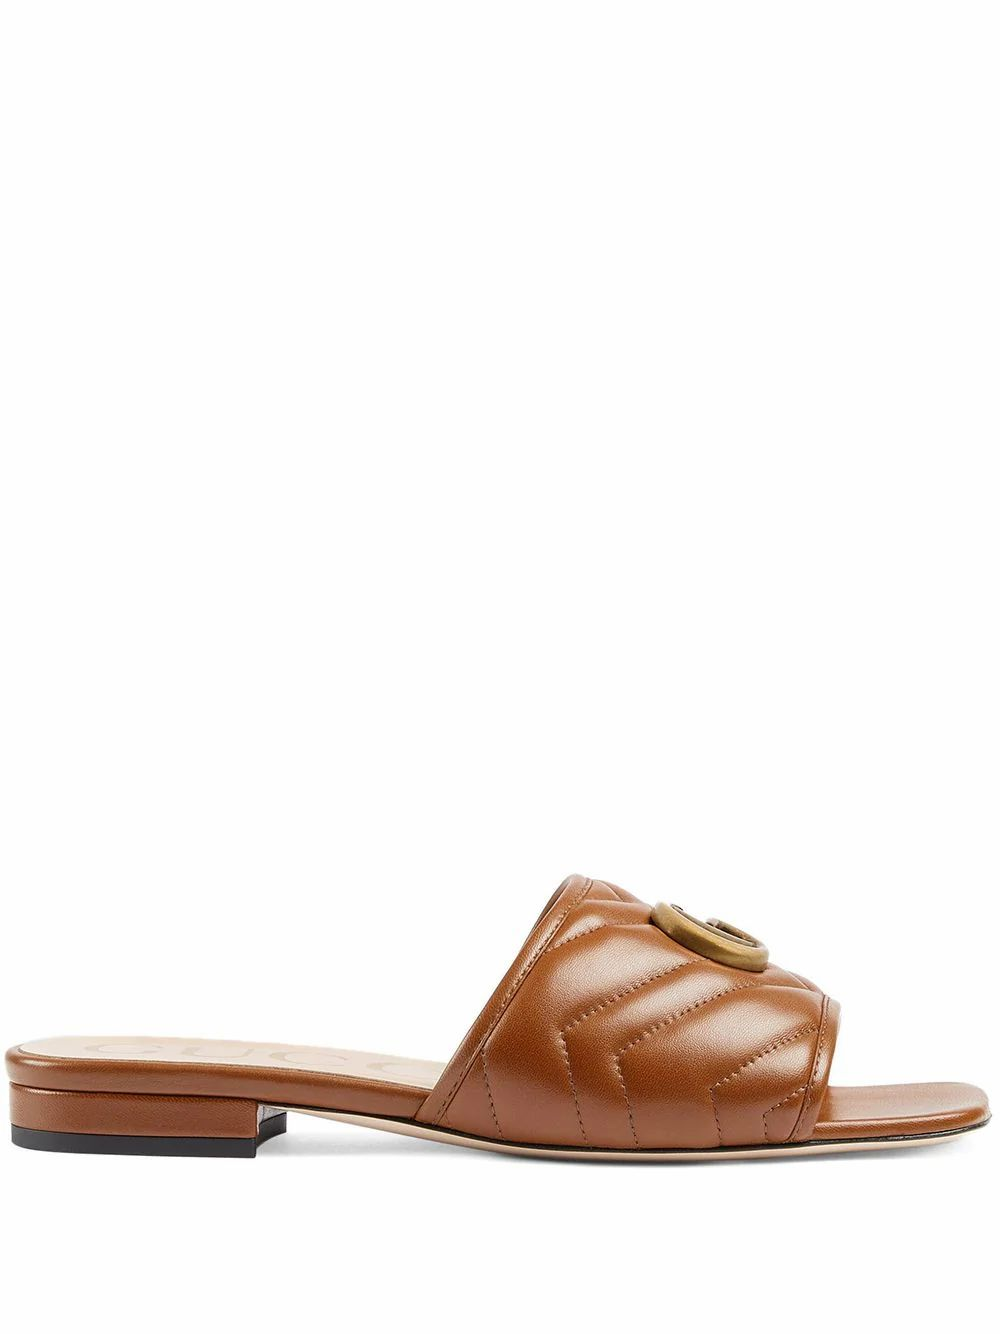 Gucci GUCCI WOMEN'S BROWN LEATHER SANDALS